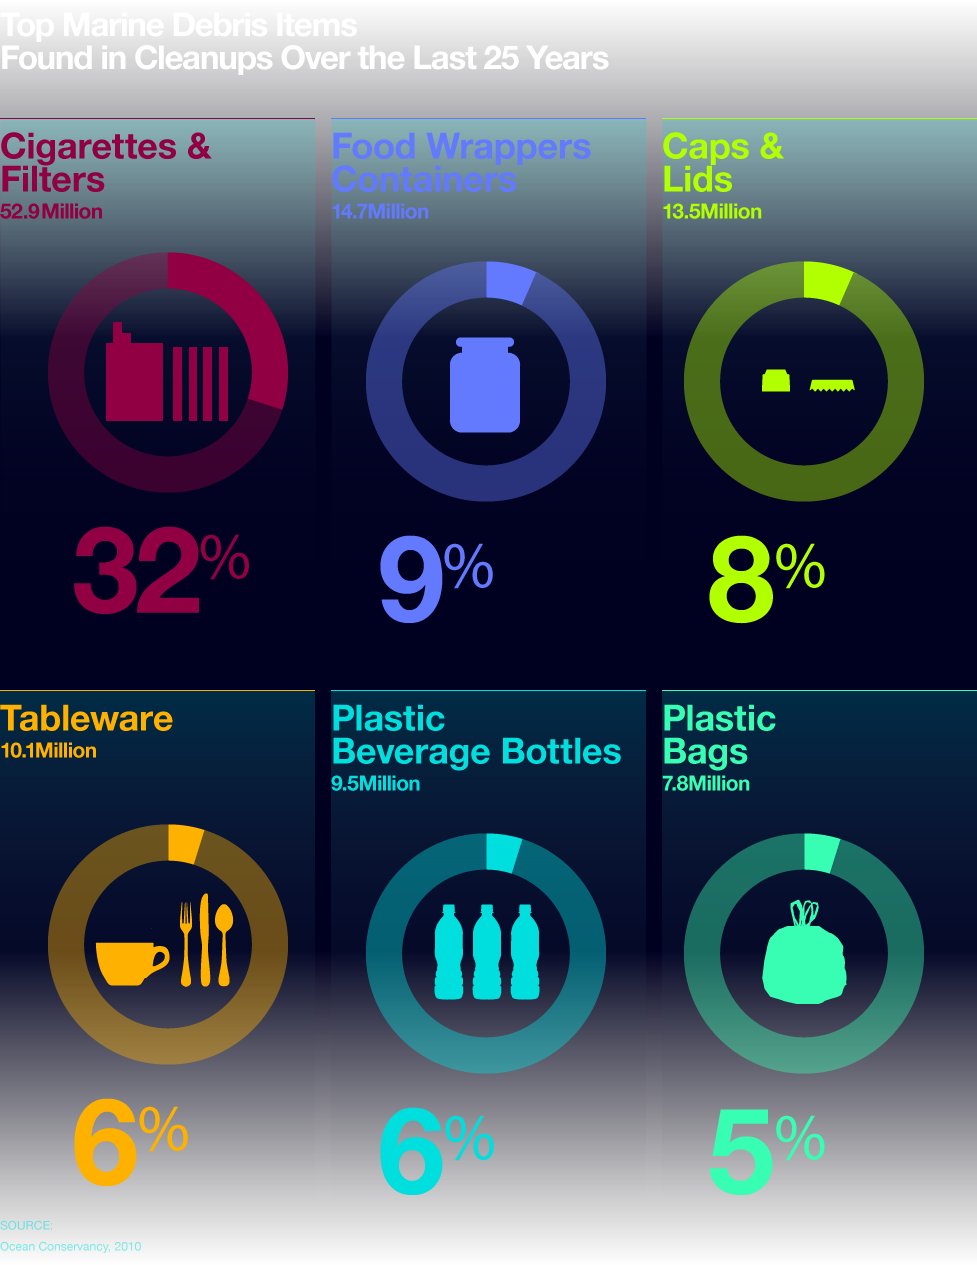 - This great infographic breaks down 6 common kinds of ocean trash, and I've added one more at the bottom based on anecdotes from other beach-goers.